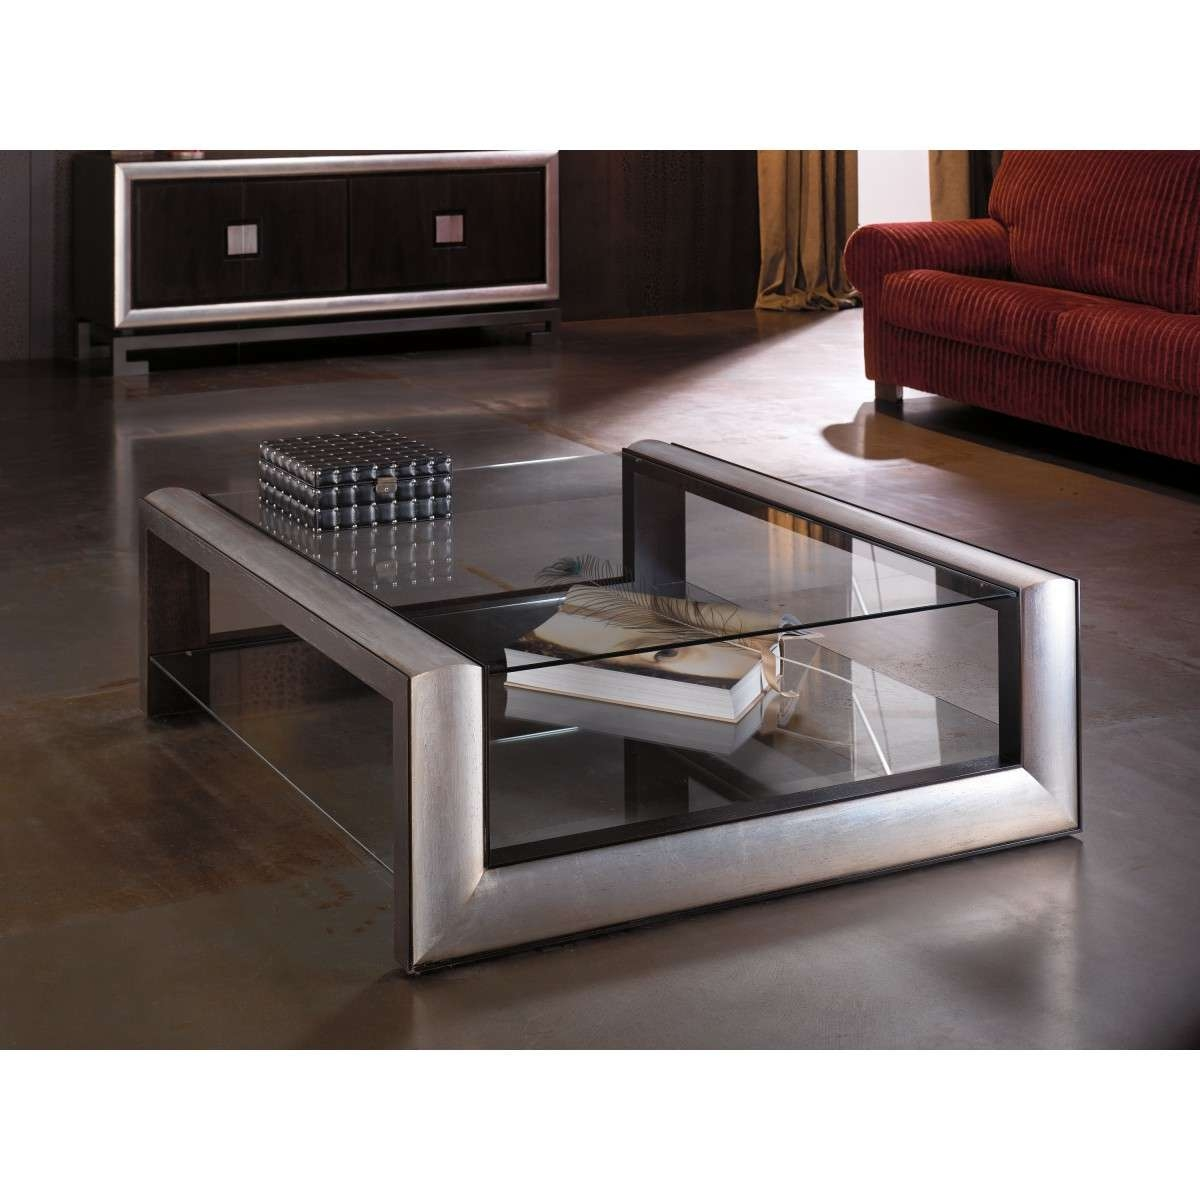 Wood And Glass Coffee Table Throughout Newest Retro Smoked Glass Coffee Tables (View 20 of 20)